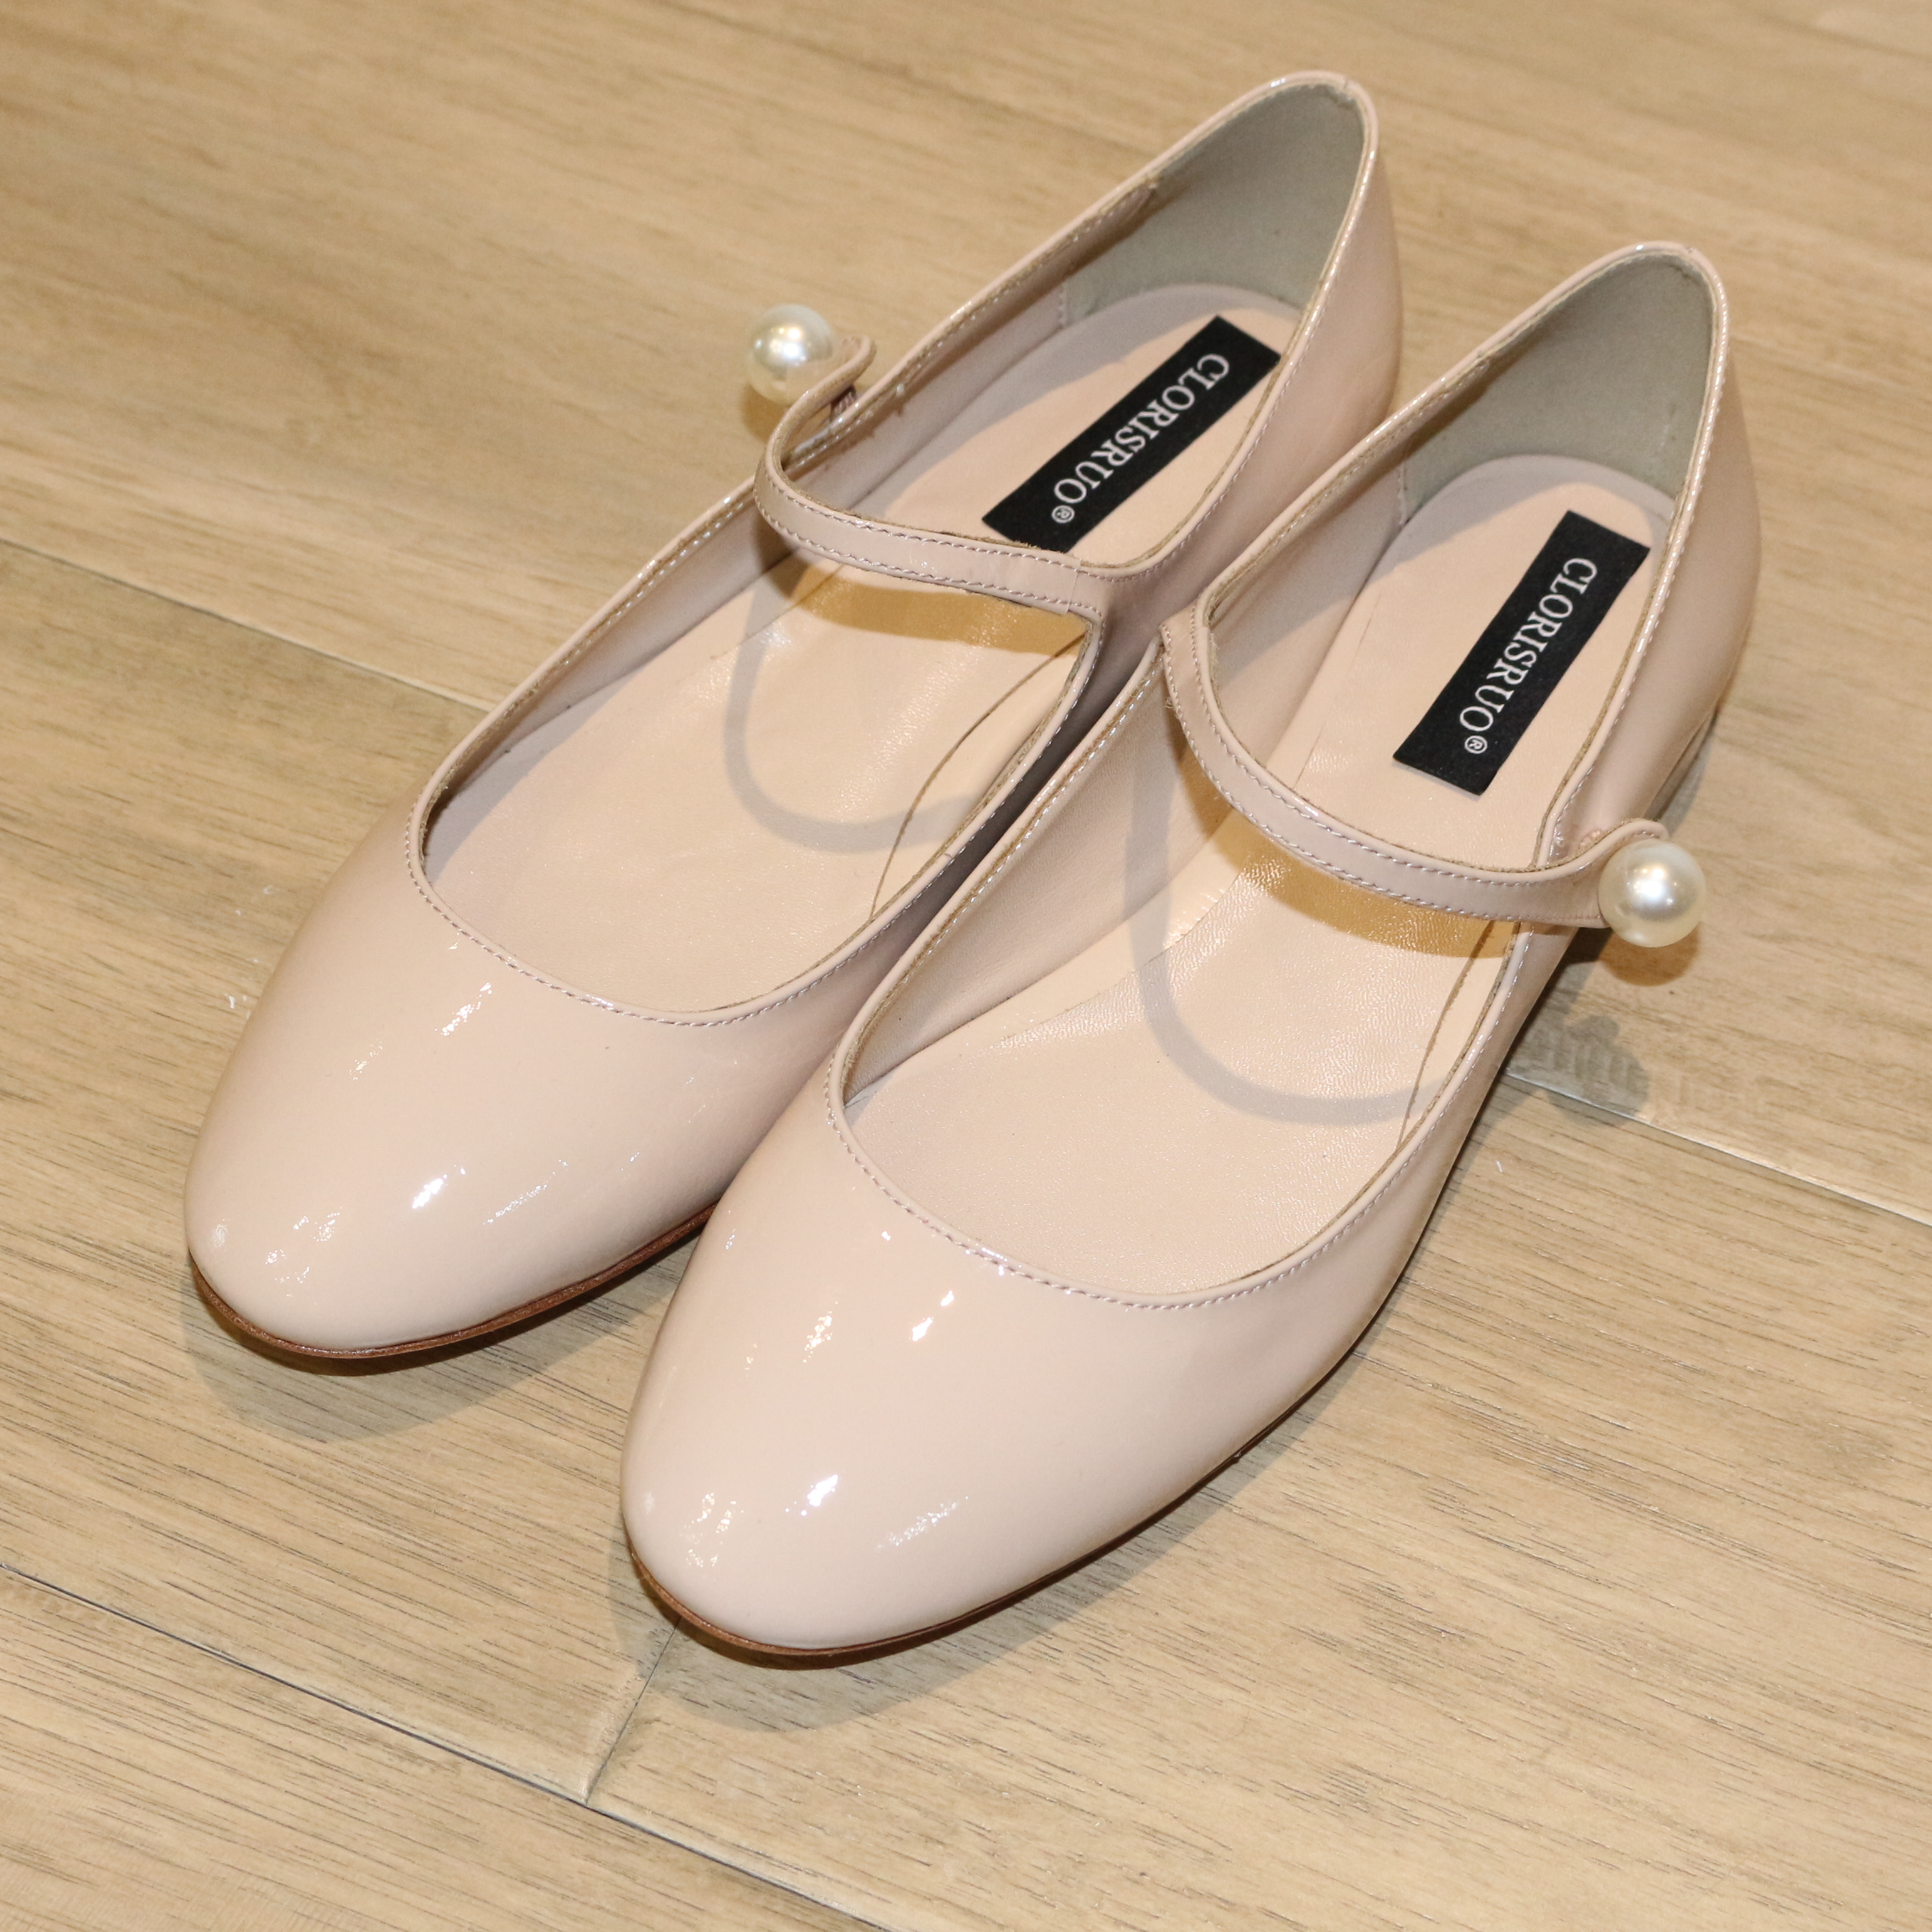 2019 Women Fashion Genuine Leather Ballet Flats Nude Color/light pink Dress Shoes Wedding Shoes Flat Ballerina Shiny Patent